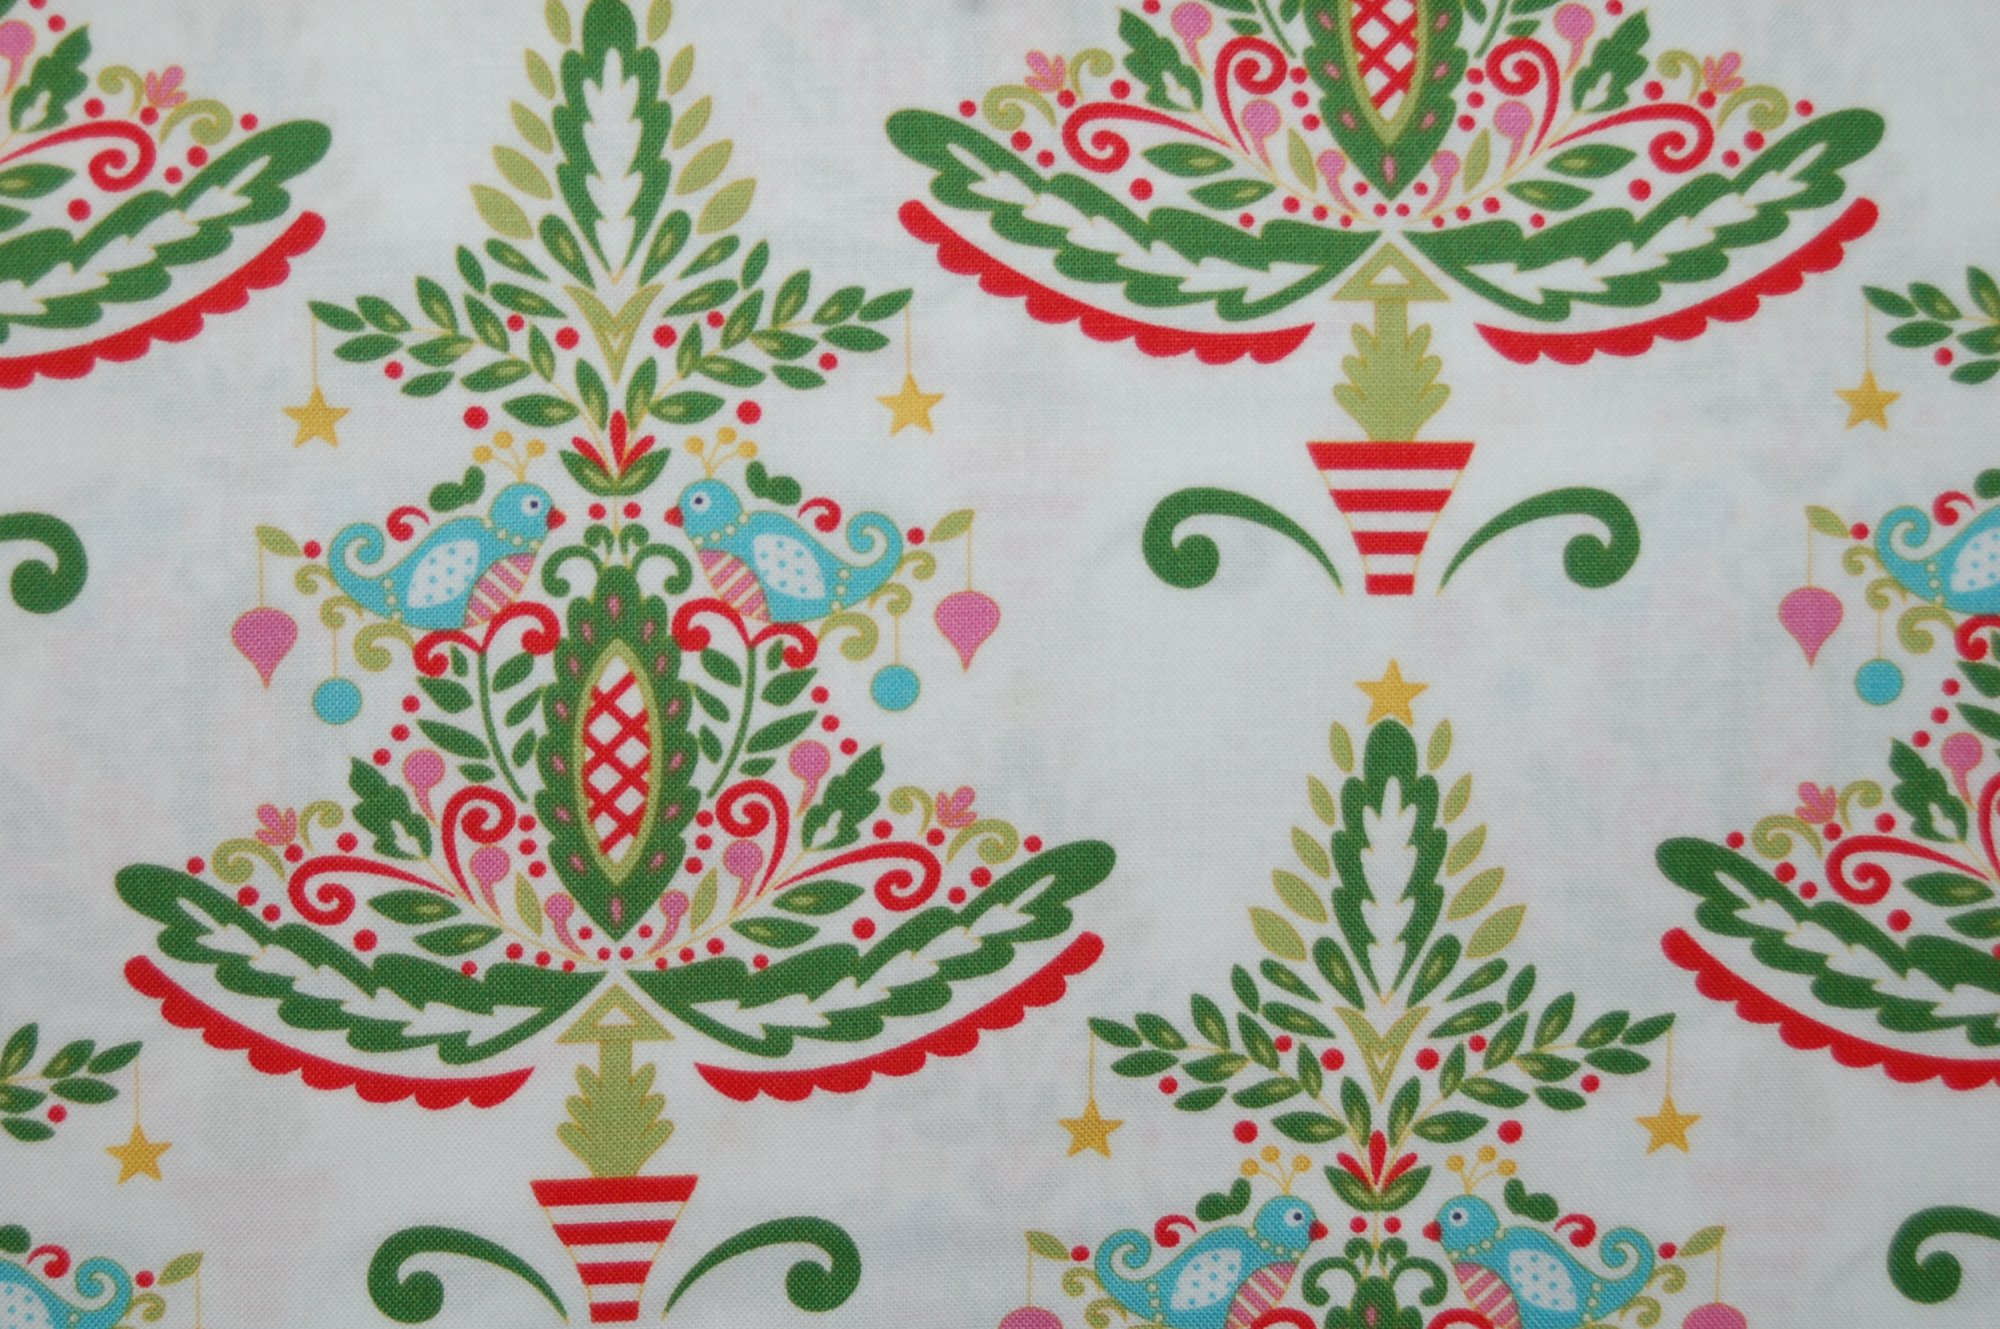 Merry Mistletoe - Partridge (White) from Dena Designs for Free Spirit